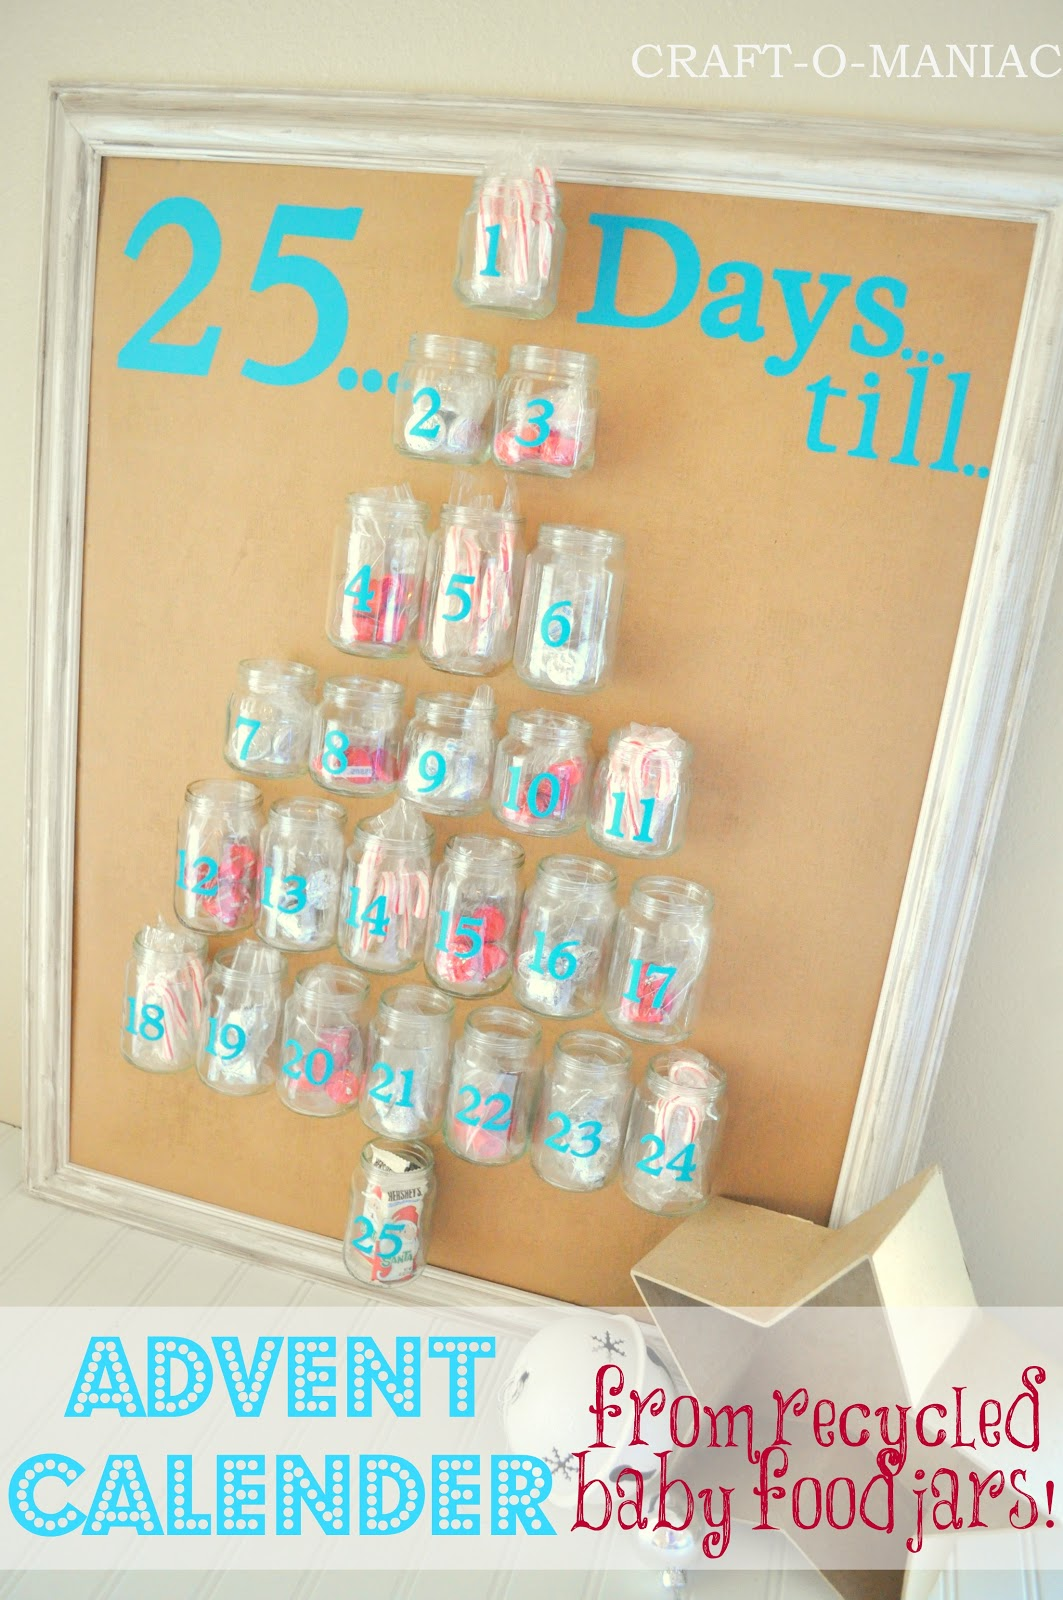 Diy Recycle Calendar : Advent calender from recycled baby food jars craft o maniac